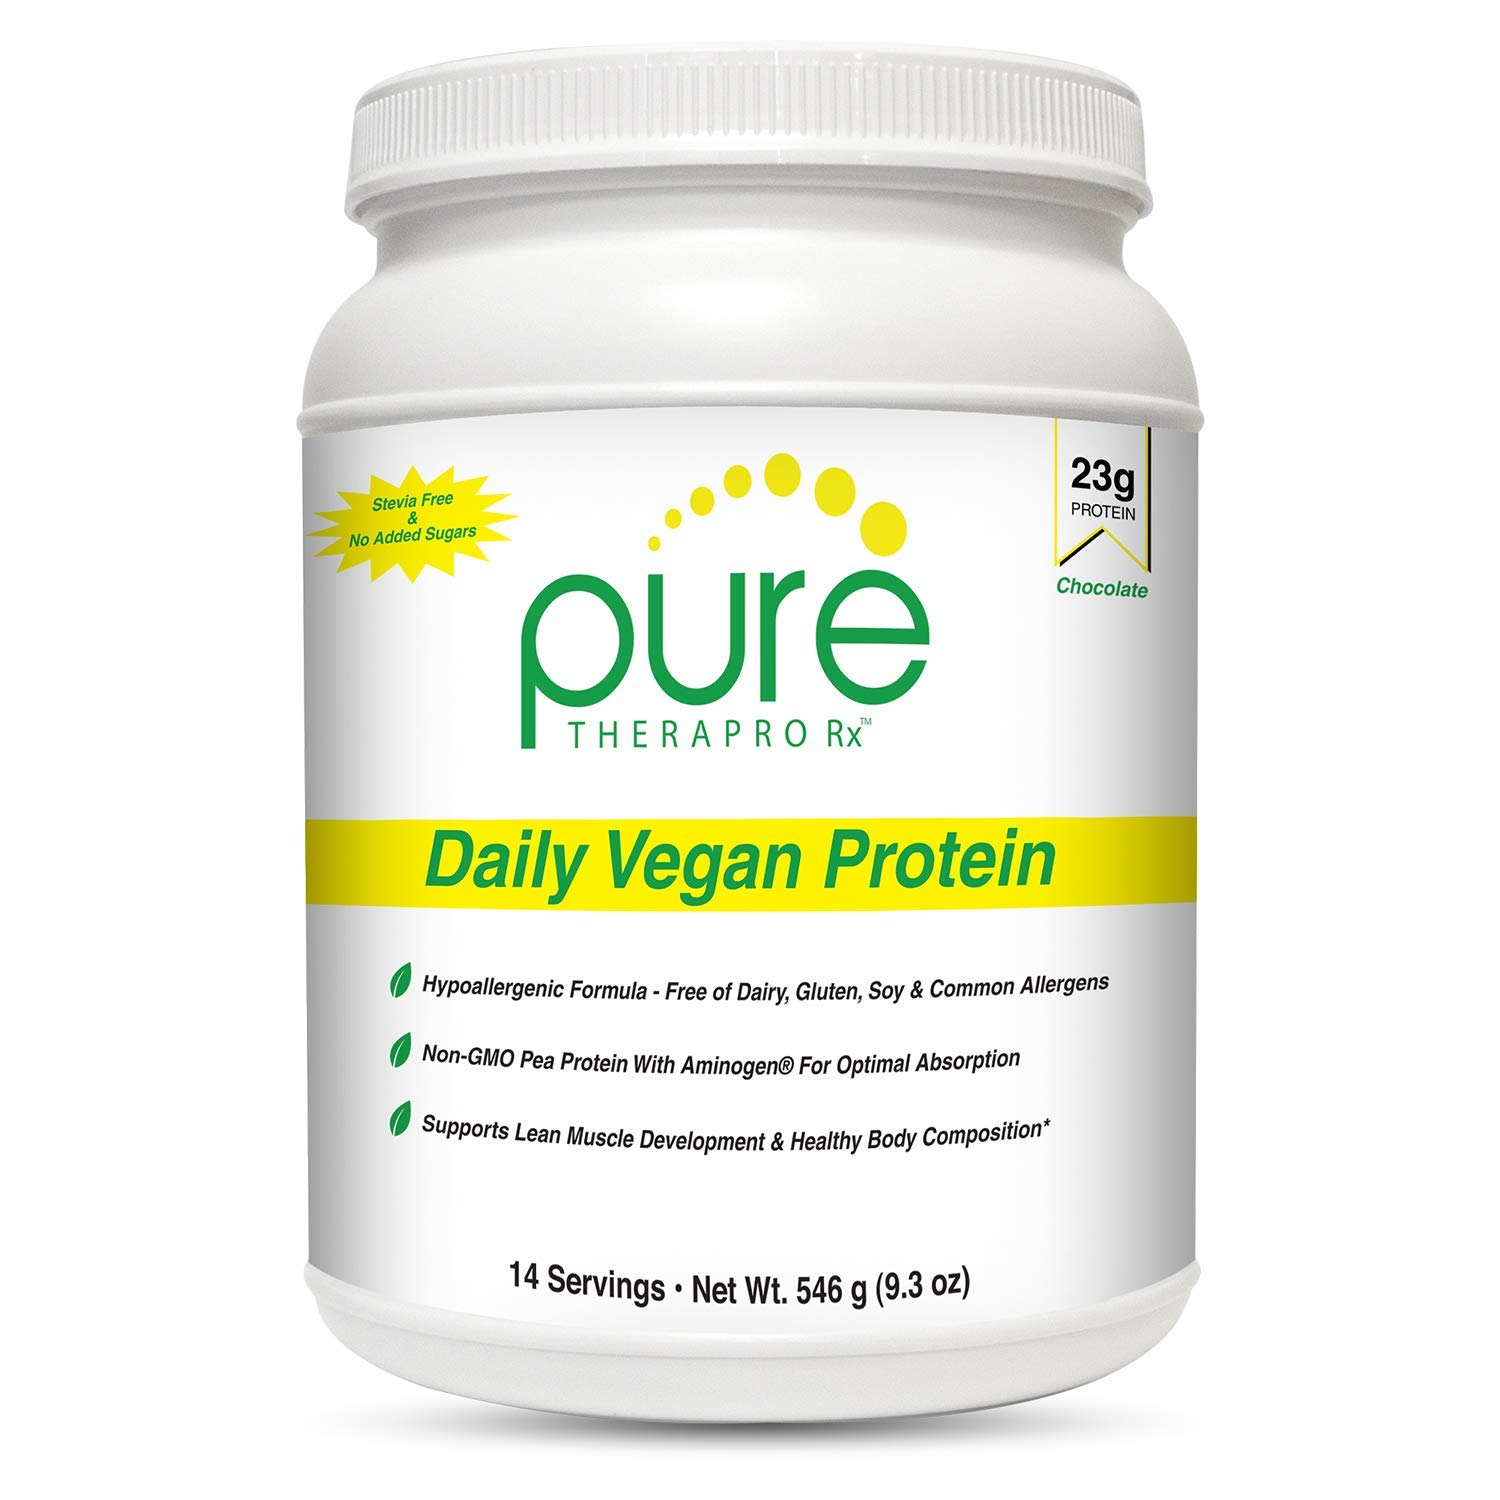 """Daily Vegan Protein""""Chocolate""""- 14 servings   23 grams of Non-Gmo Yellow Pea Protein & Aminogen   Sugar Free - Sweetened with Monk Fruit   7g of Fiber (Inulin from chicory)   Amino Acid Score of 100%"""